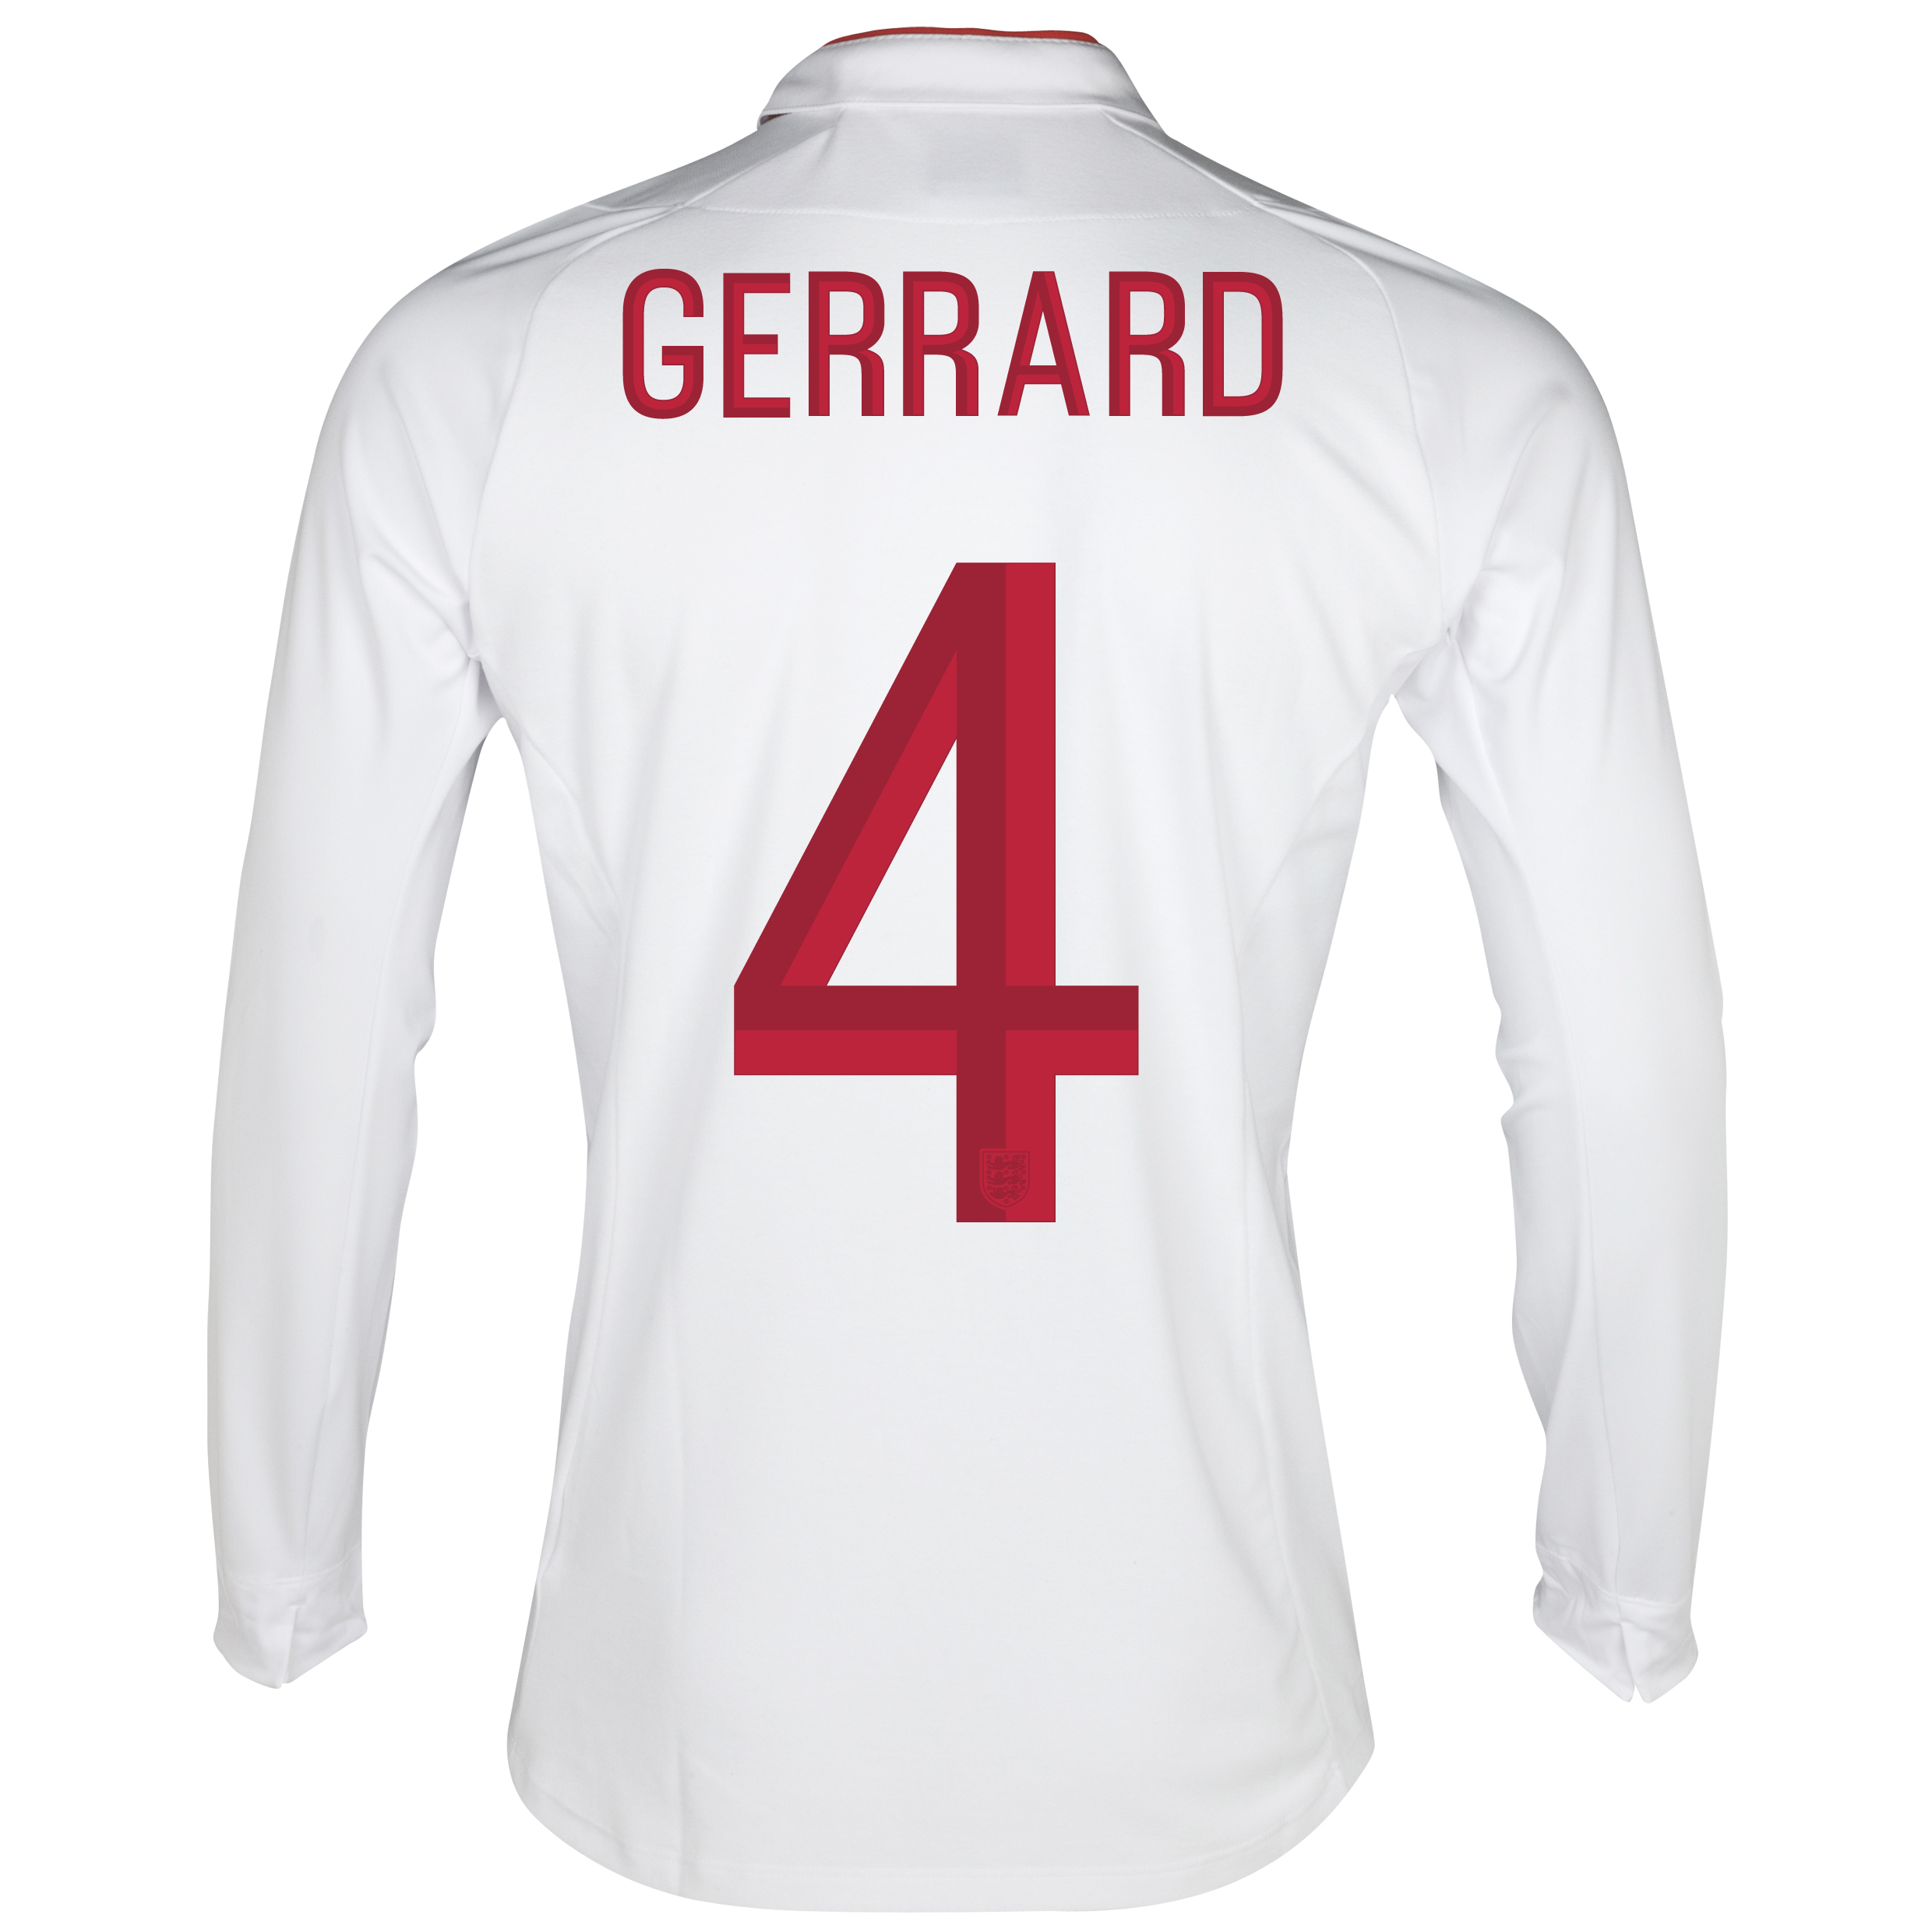 England Home Shirt 2012/13 - Long Sleeve - Boys with Gerrard 4 printing